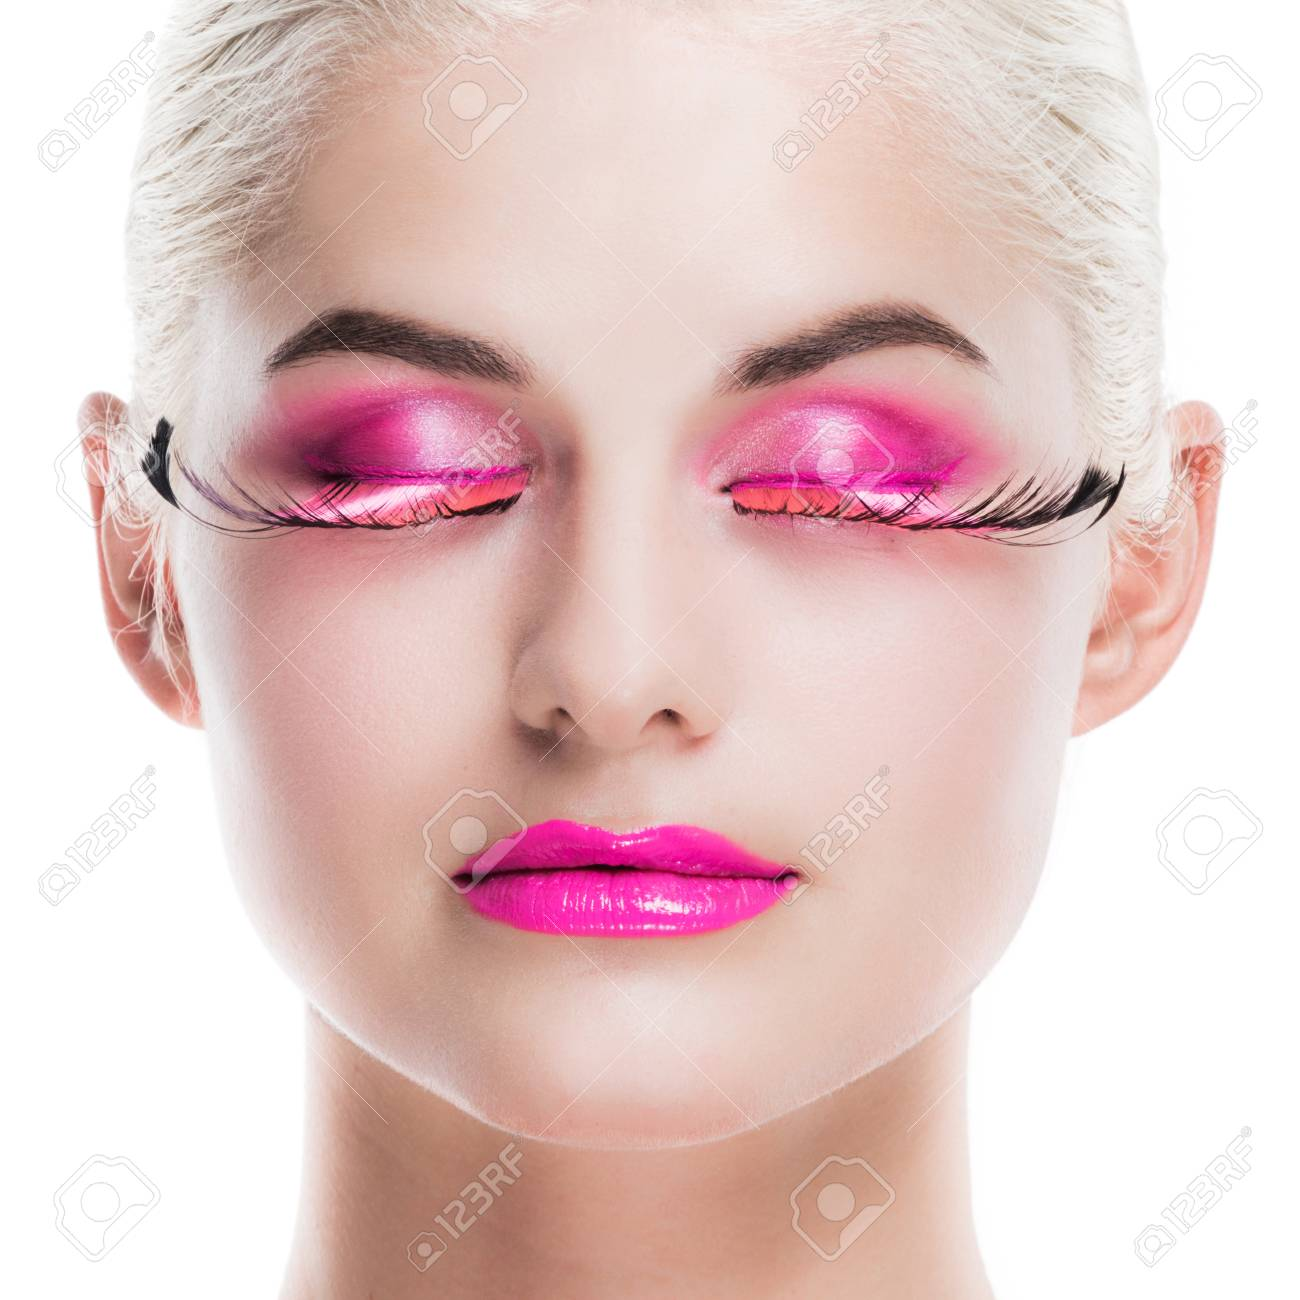 81512cb3112 Stock Photo - Woman with pink fancy makeup smoky eyeshadow with long feather  false eyelashes isolated on white background